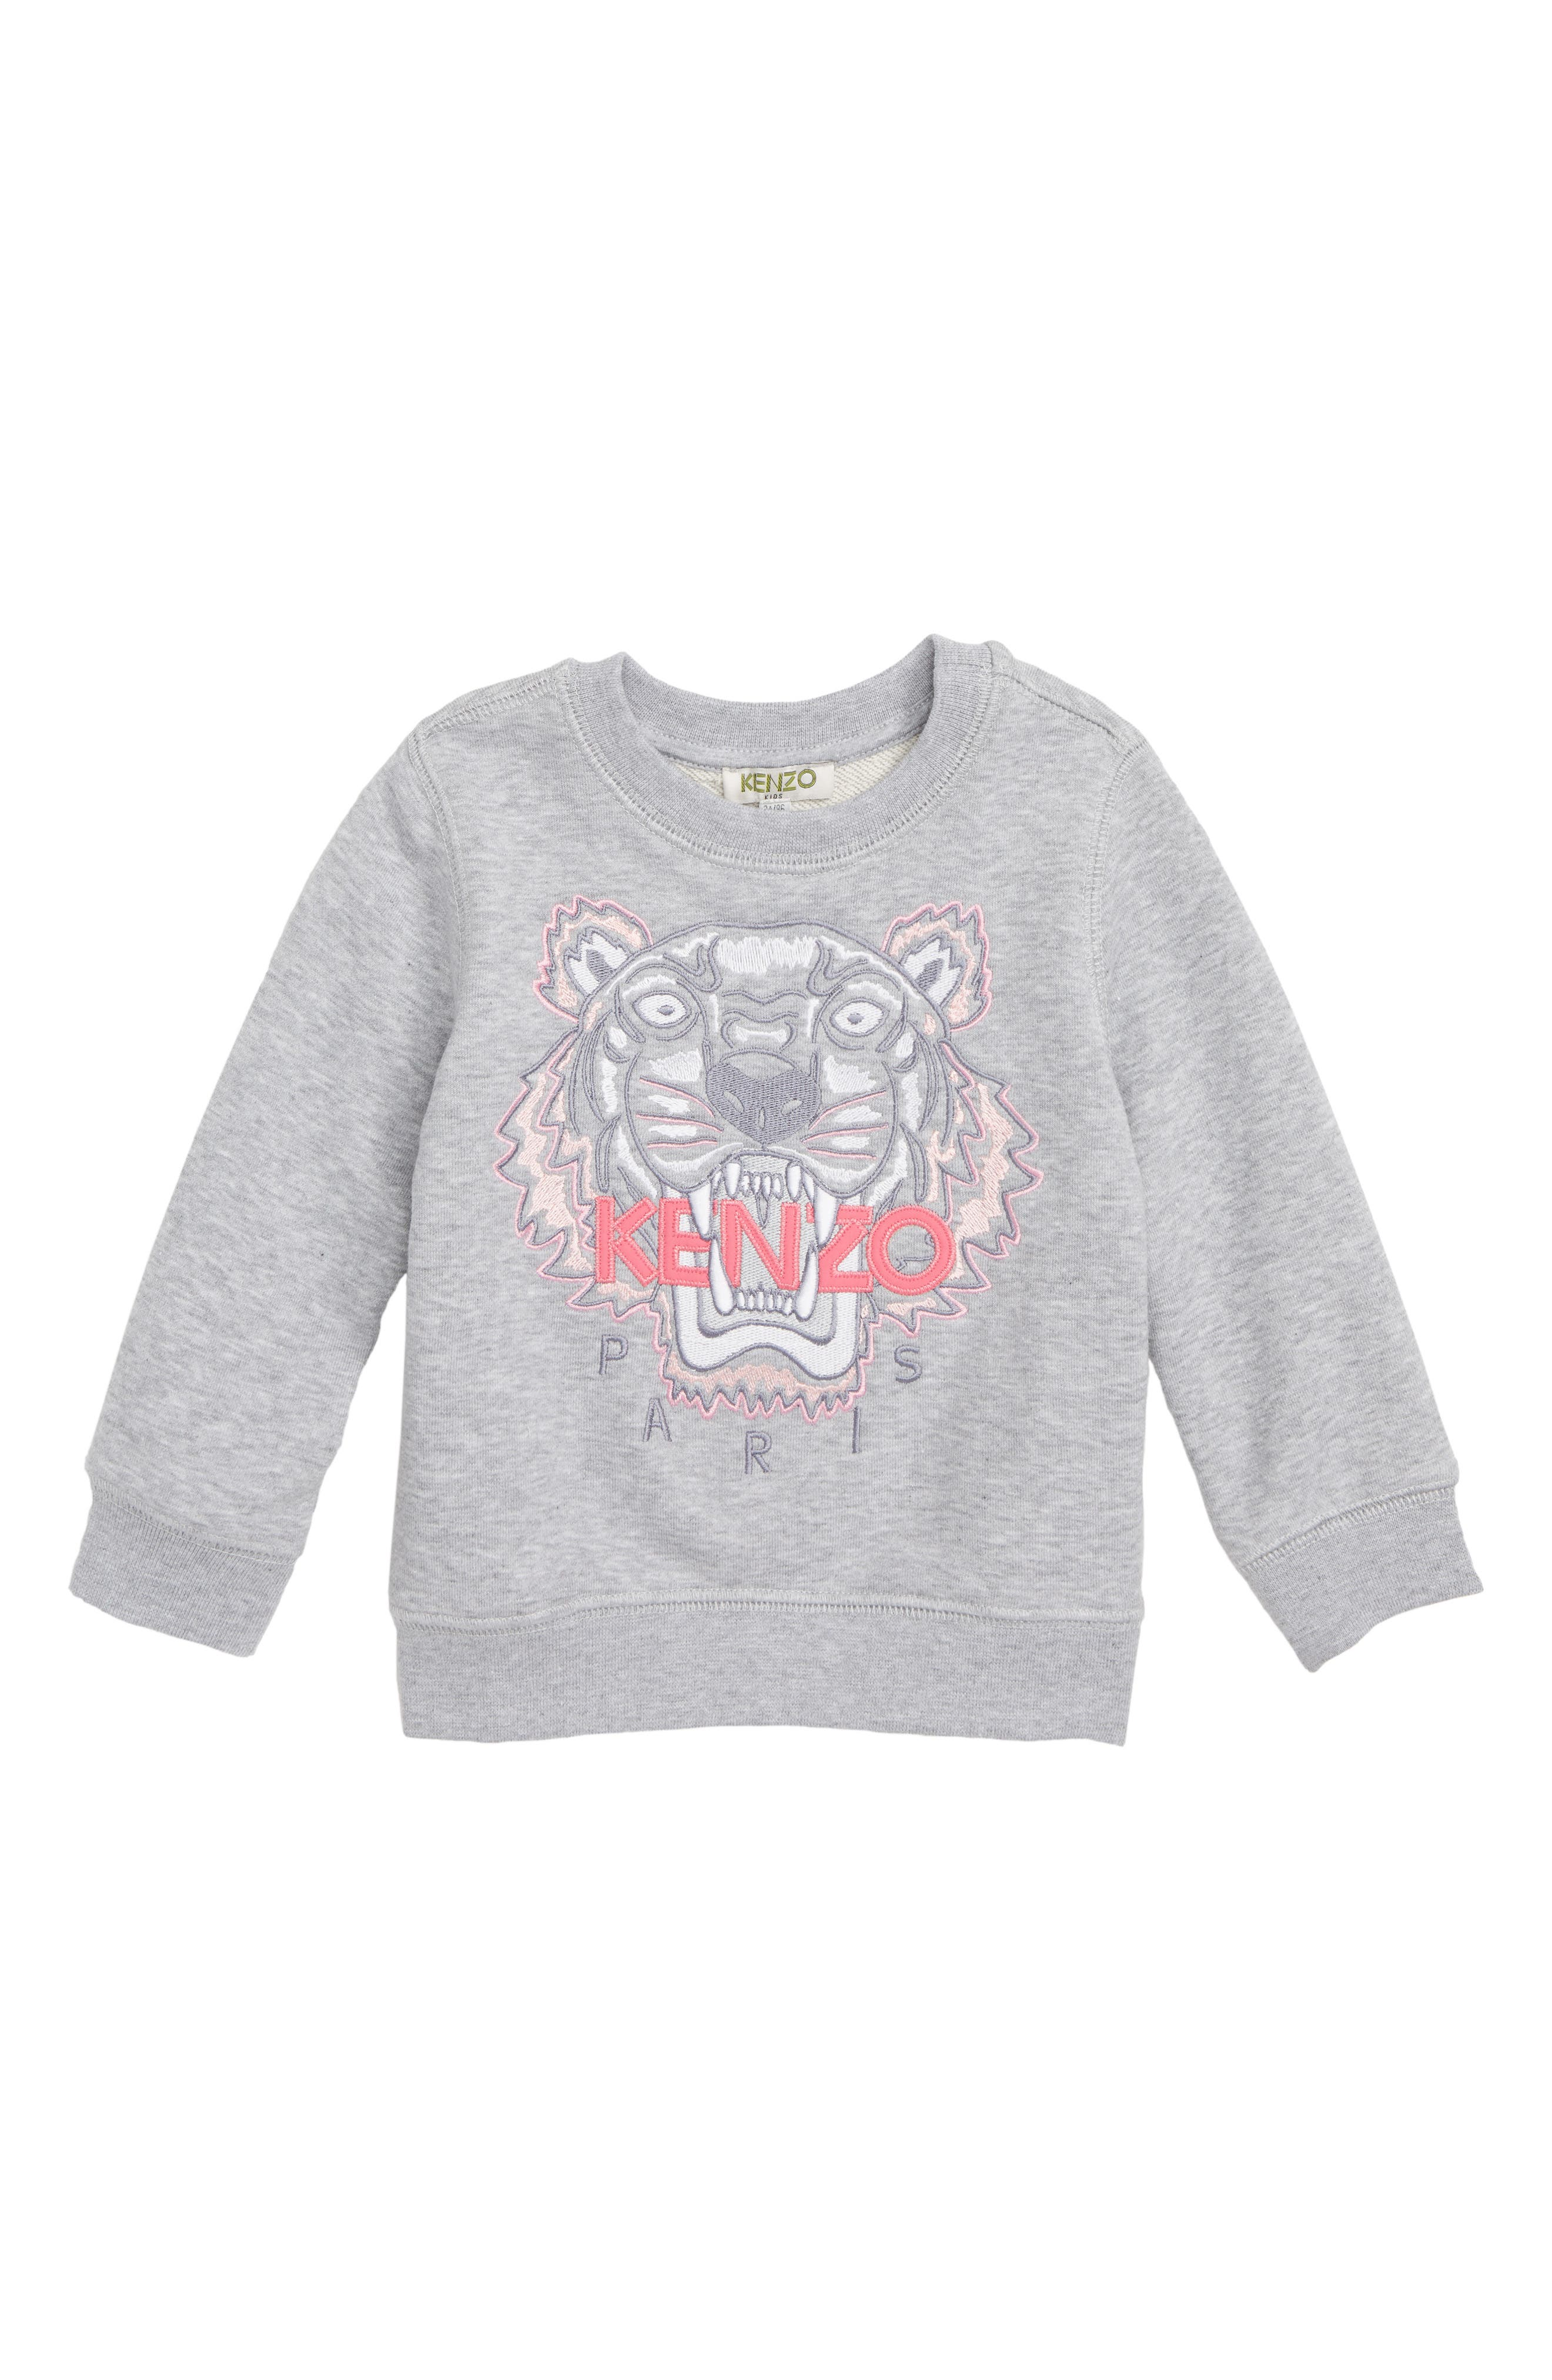 KENZO Tiger Embroidered Sweatshirt, Main, color, MARLE GREY